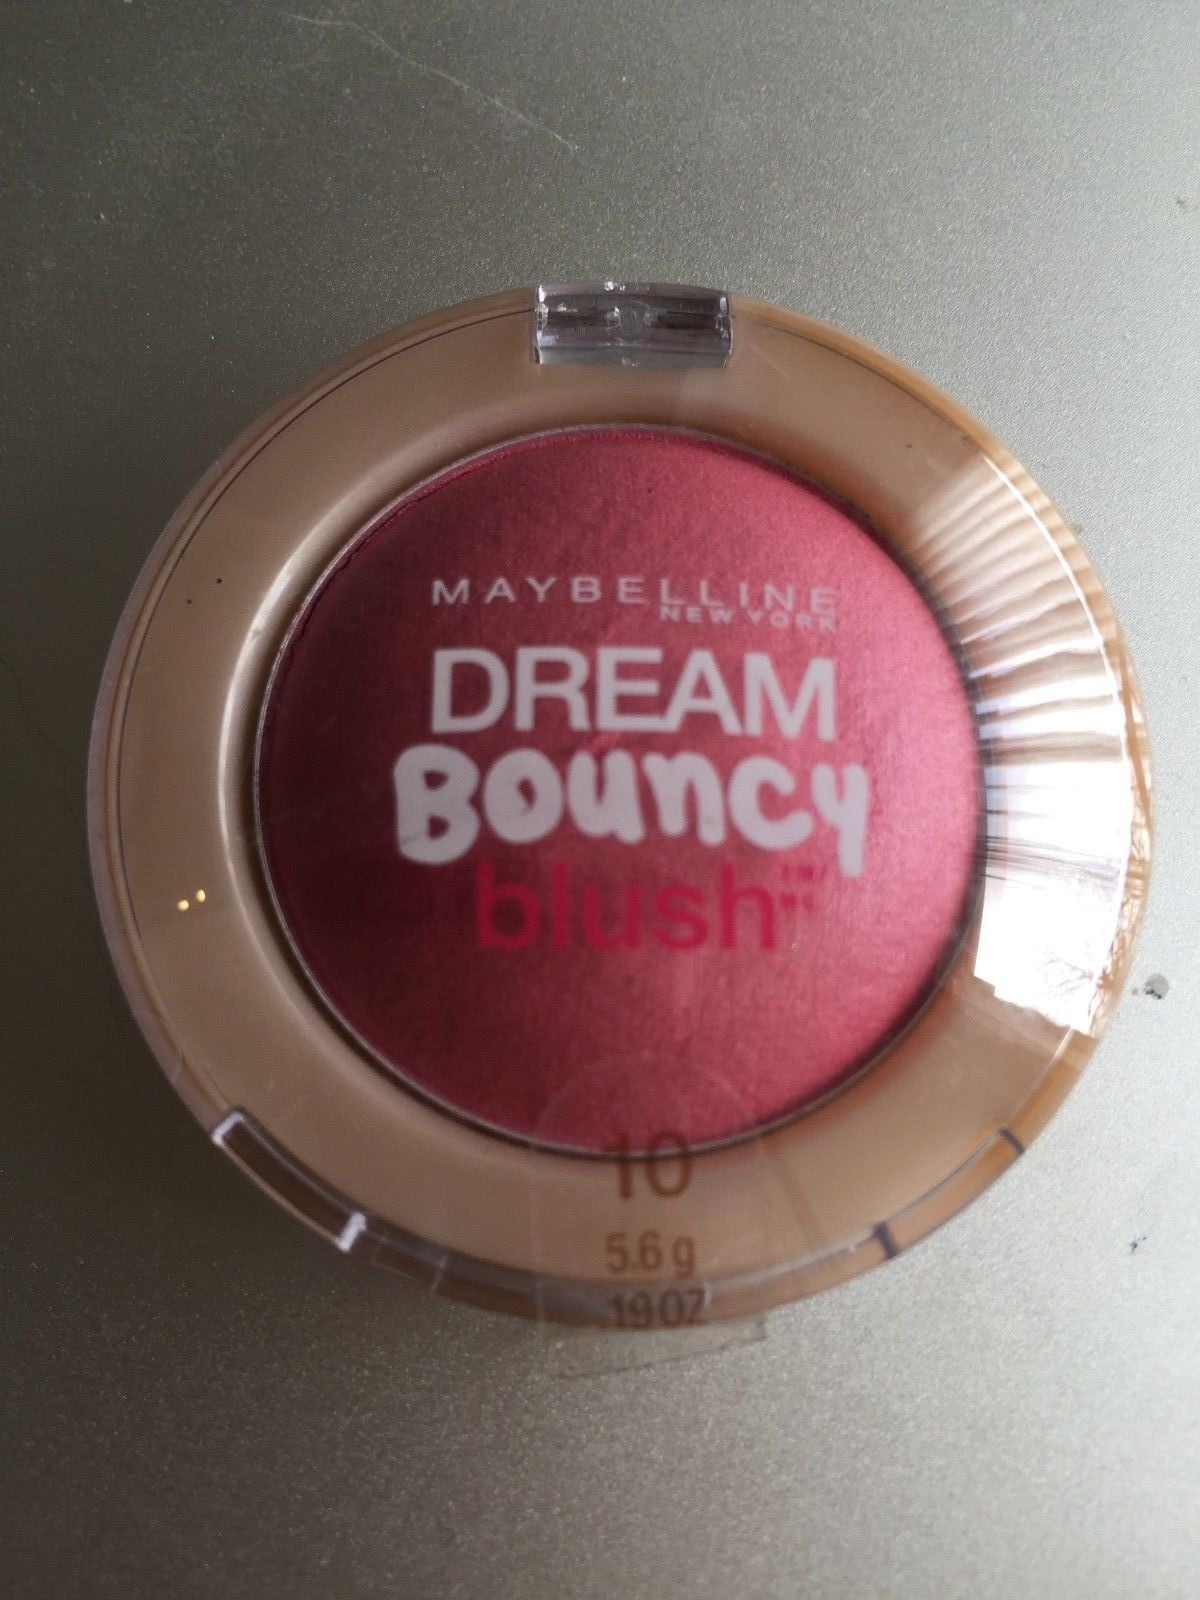 MAYBELLINE DREAM BOUNCY BLUSH 10 PINK FROSTING NEW